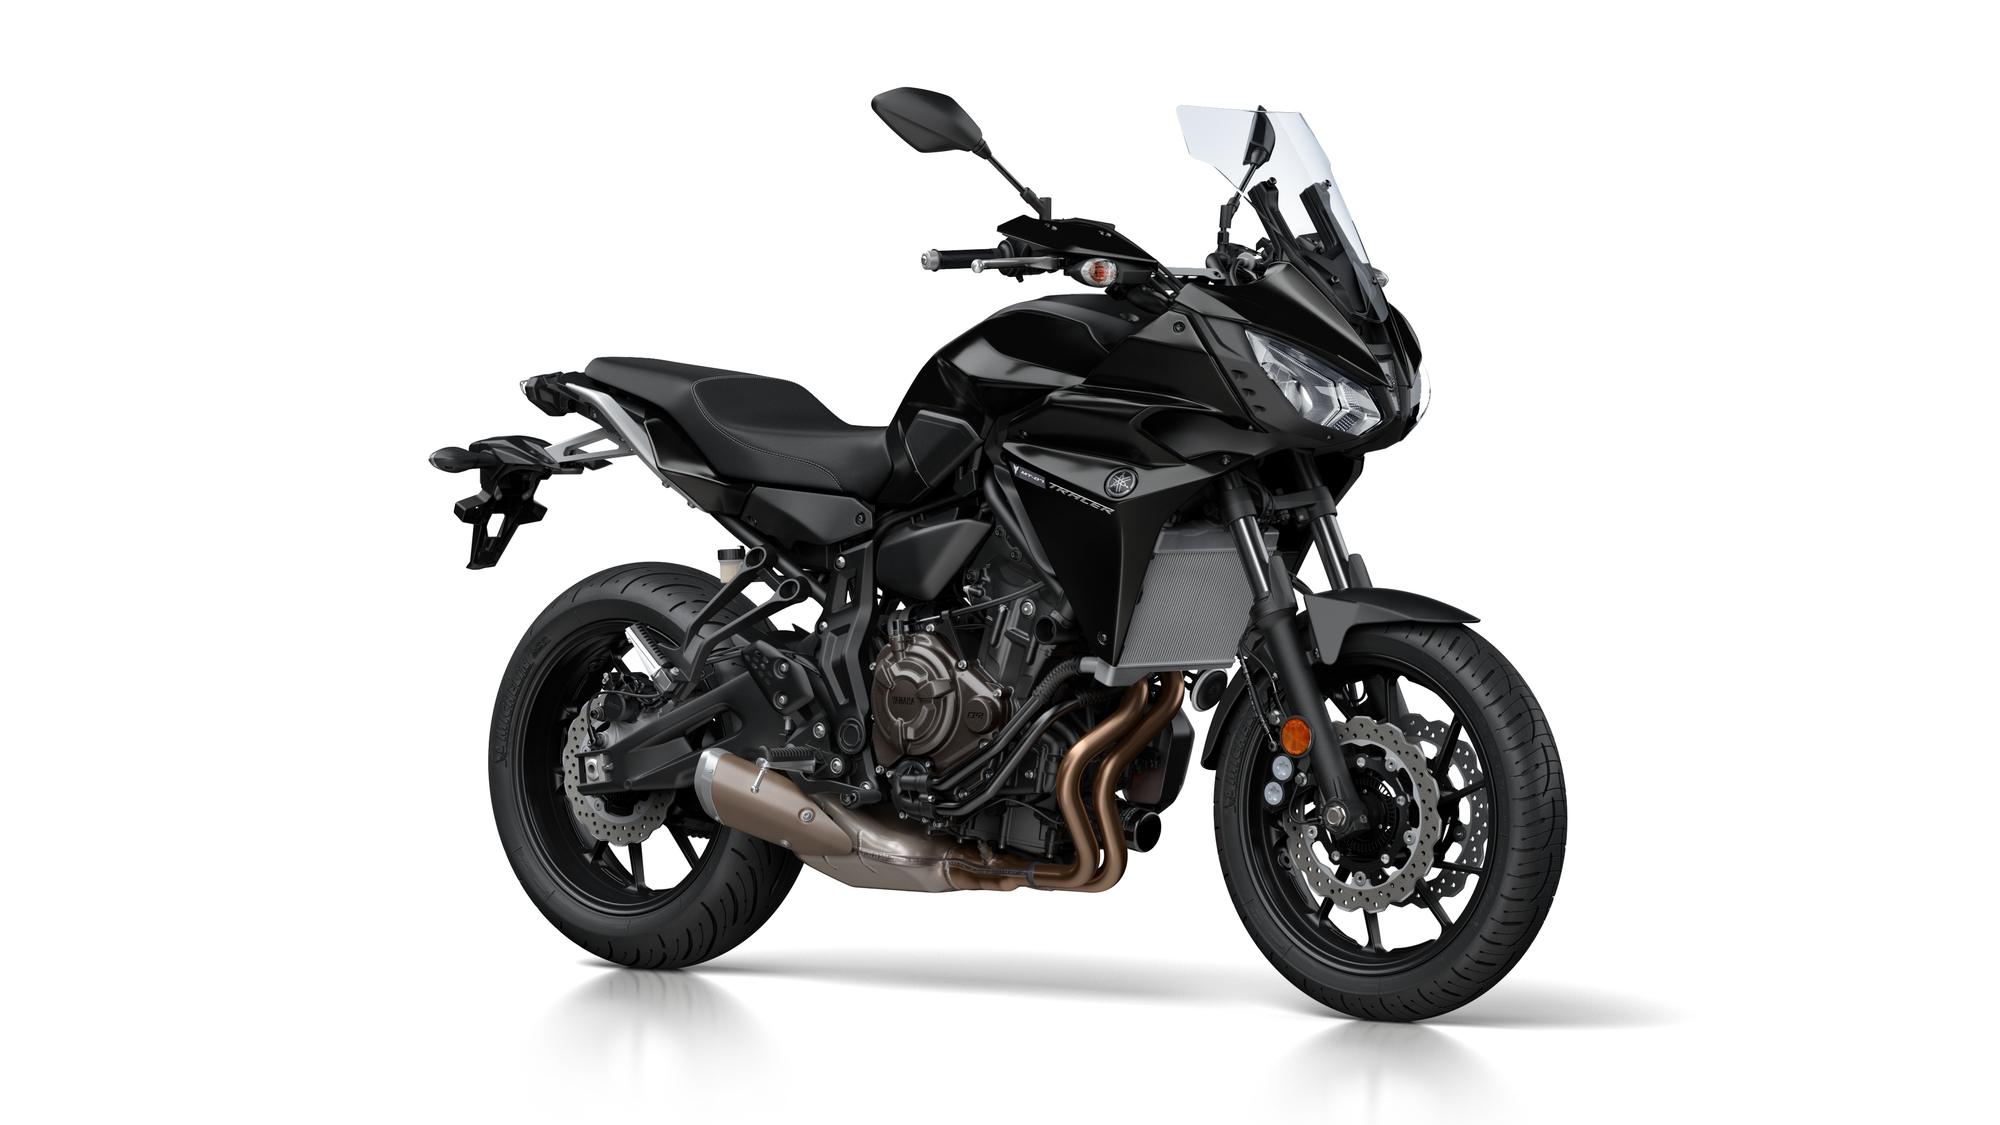 Tracer 700